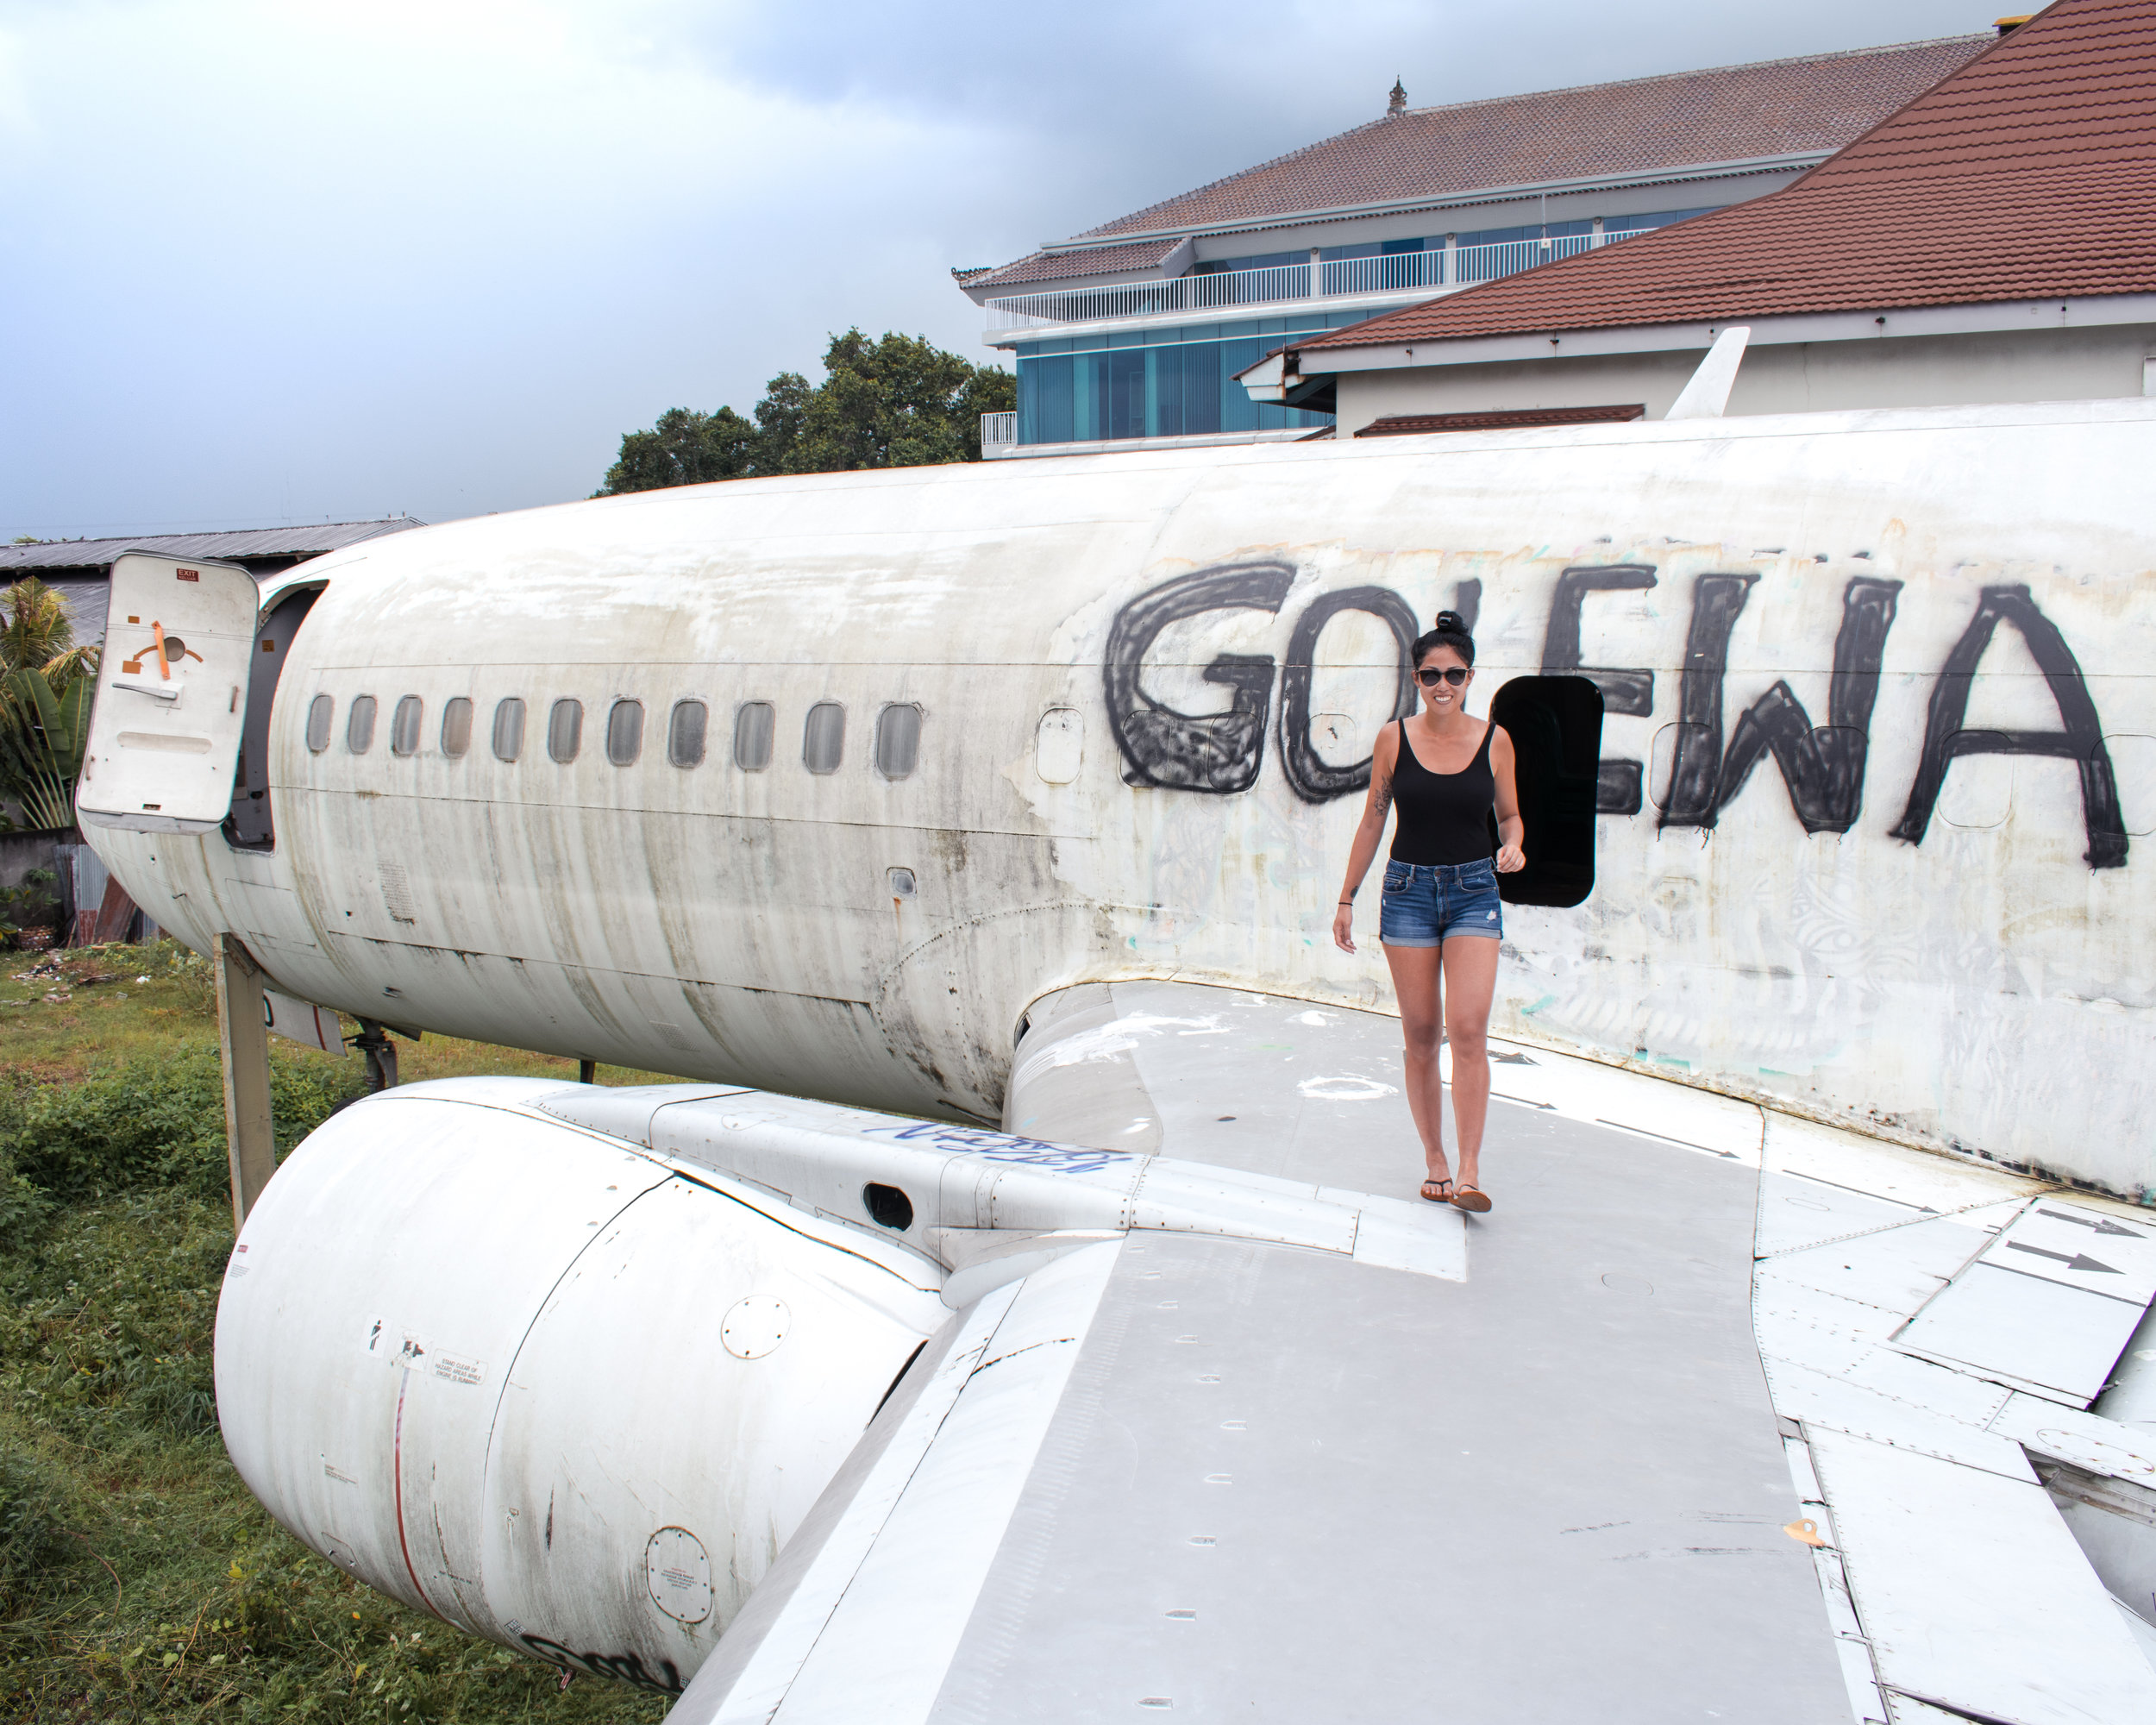 Standing on the wing of an abandoned plane in Bali, Indonesia